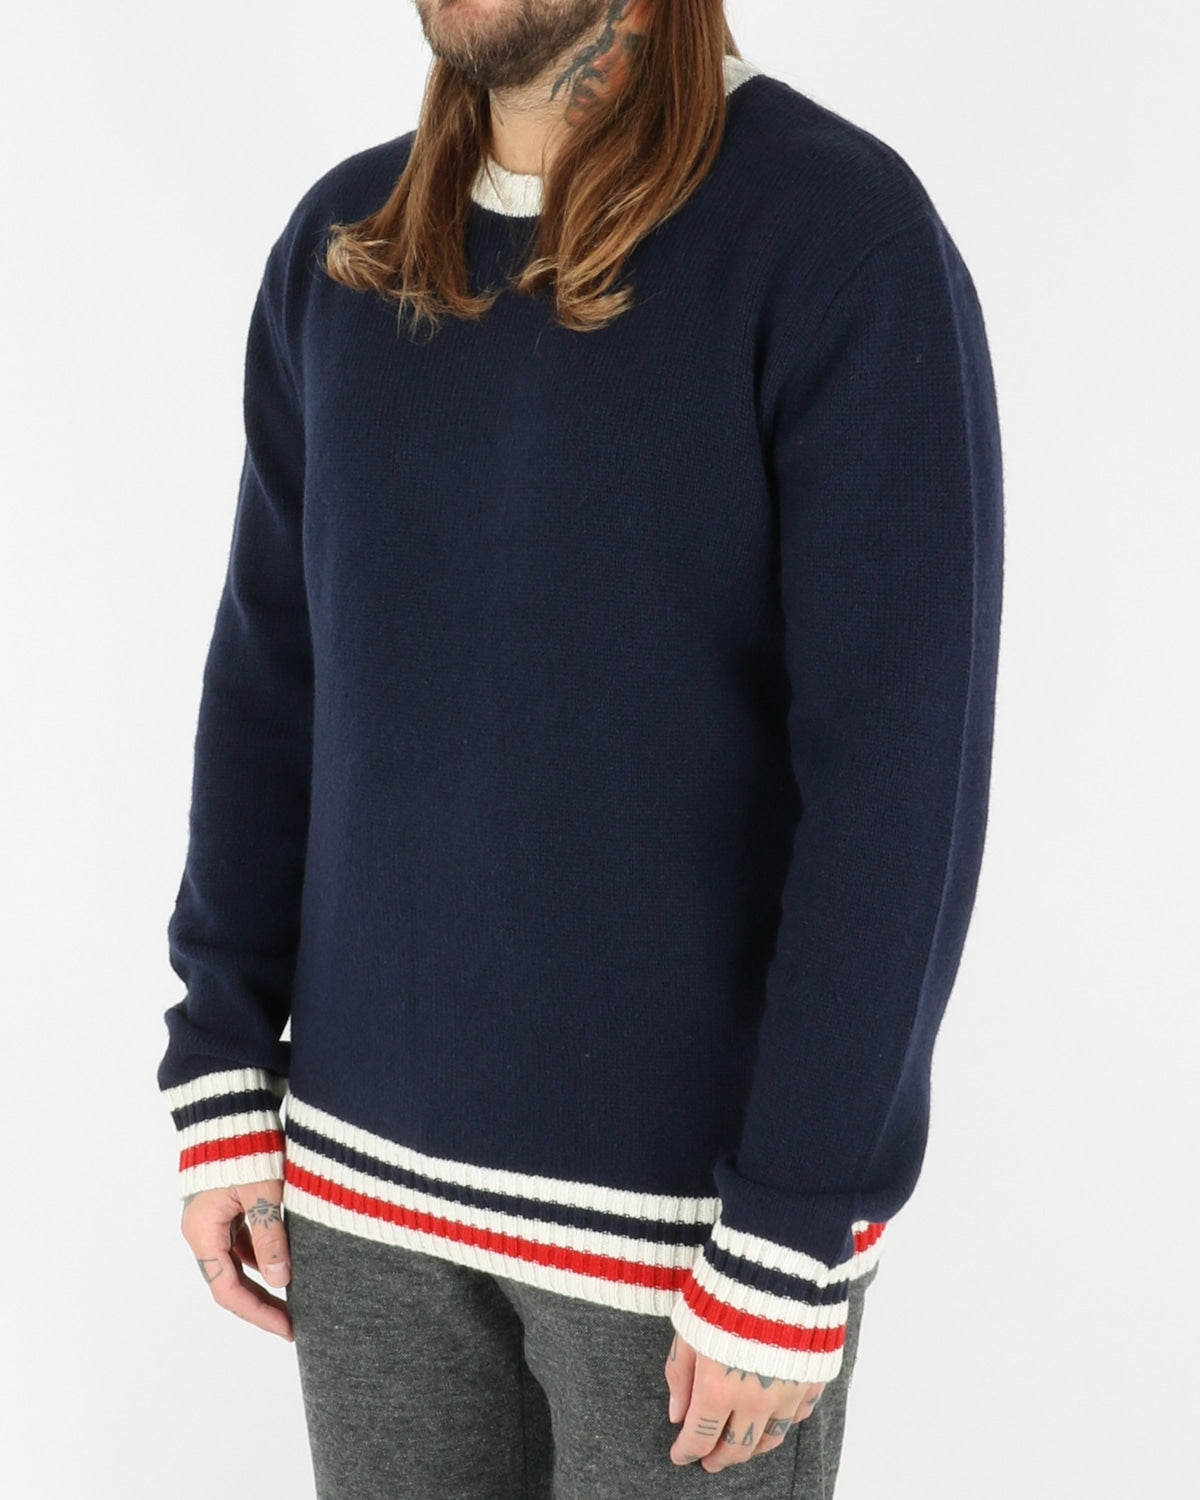 les deux_french lambswool jumper_dark navy_2_3